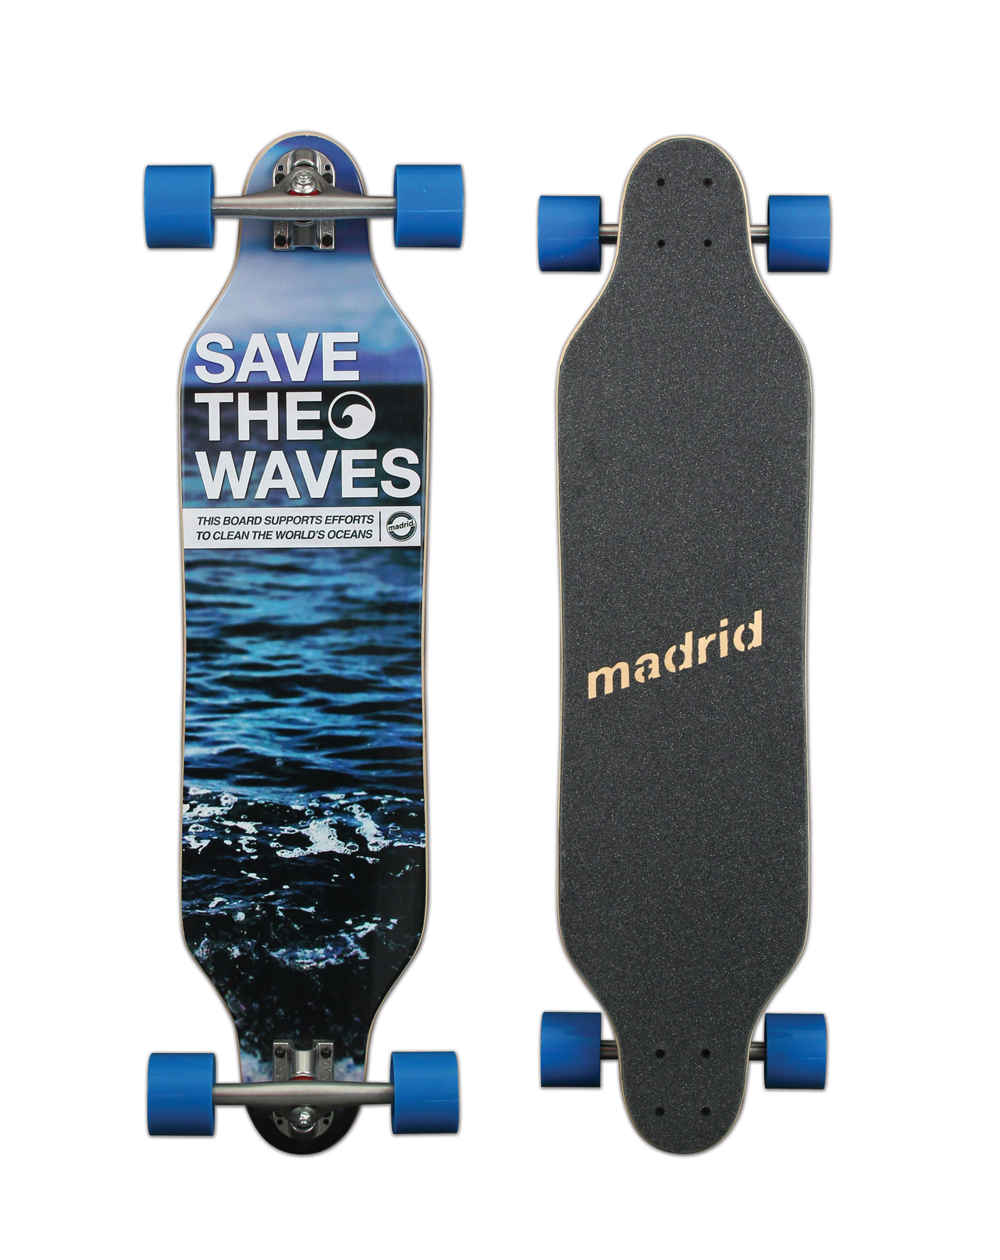 Madrid Save the Waves Maxed Longboard